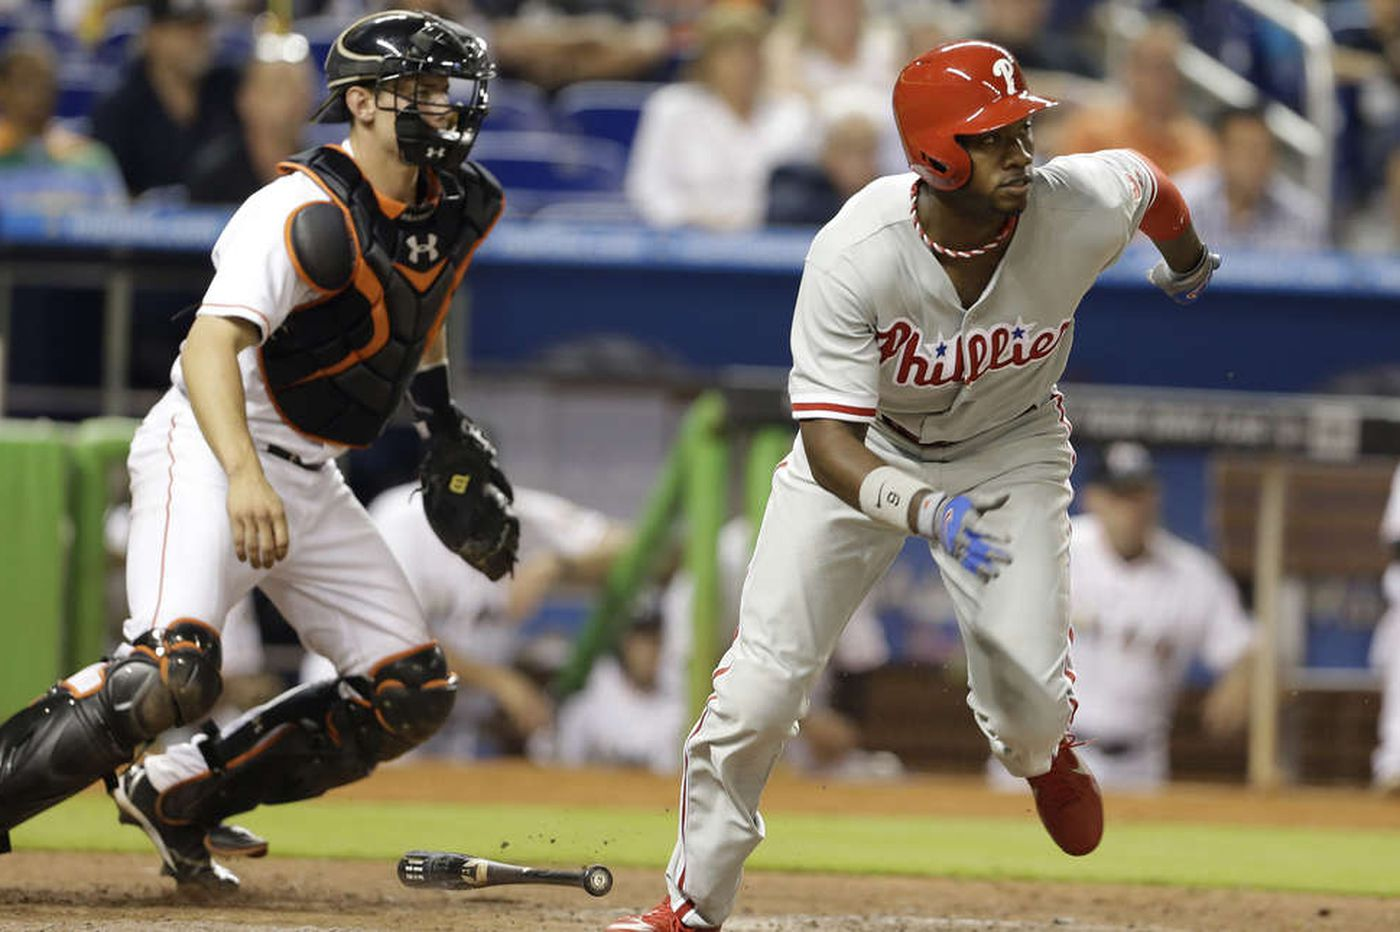 Phillies batter Marlins, but aching Utley sits out